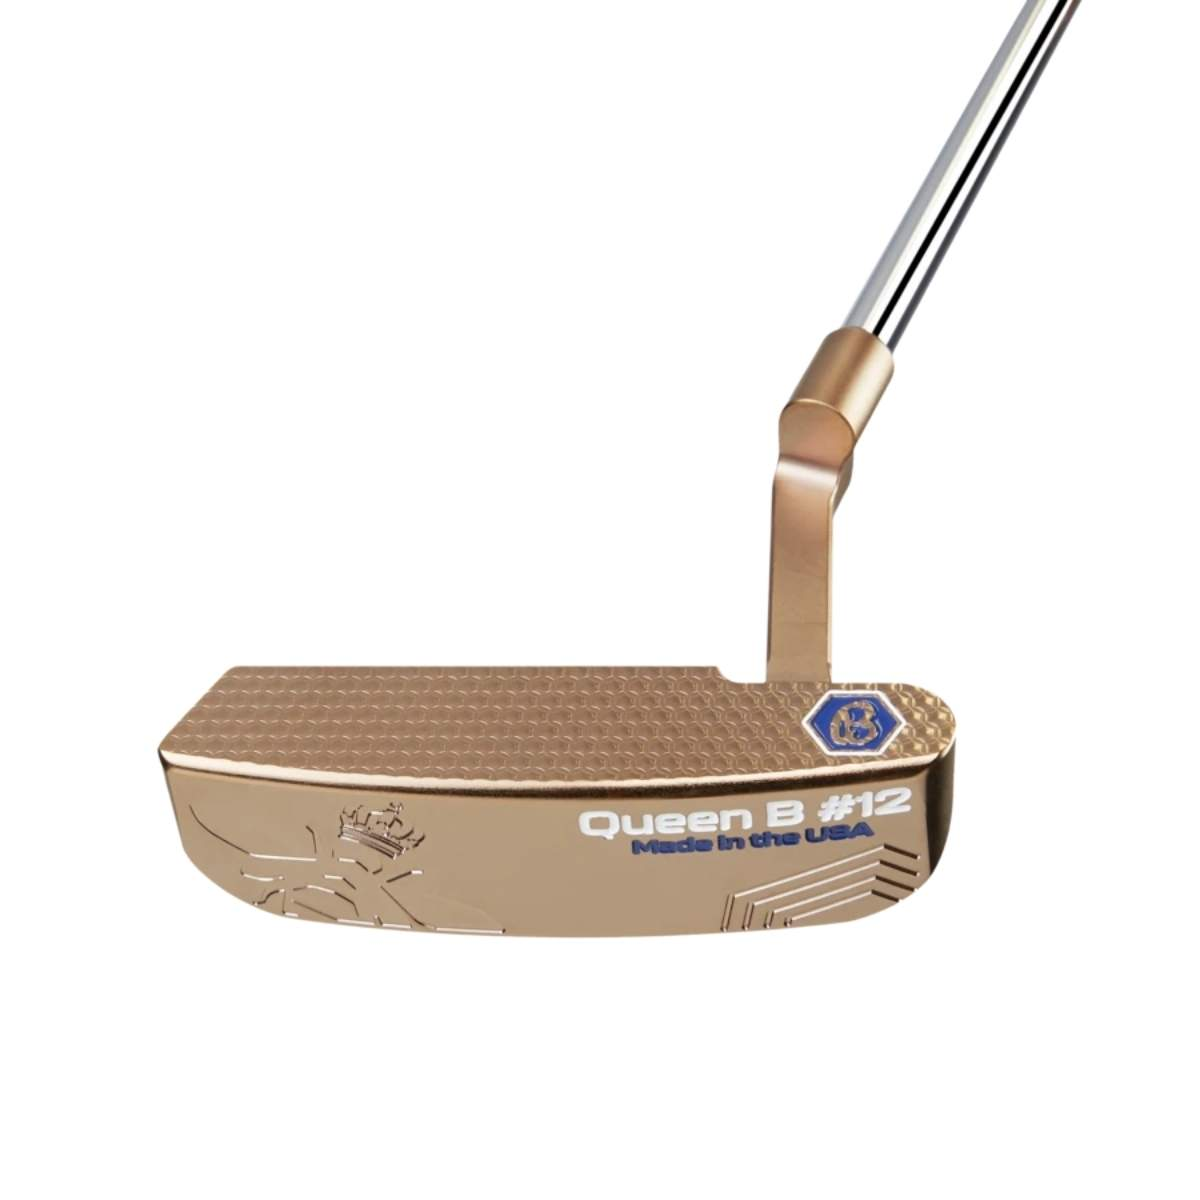 Bettinardi 2021 Queen B 12 Putter